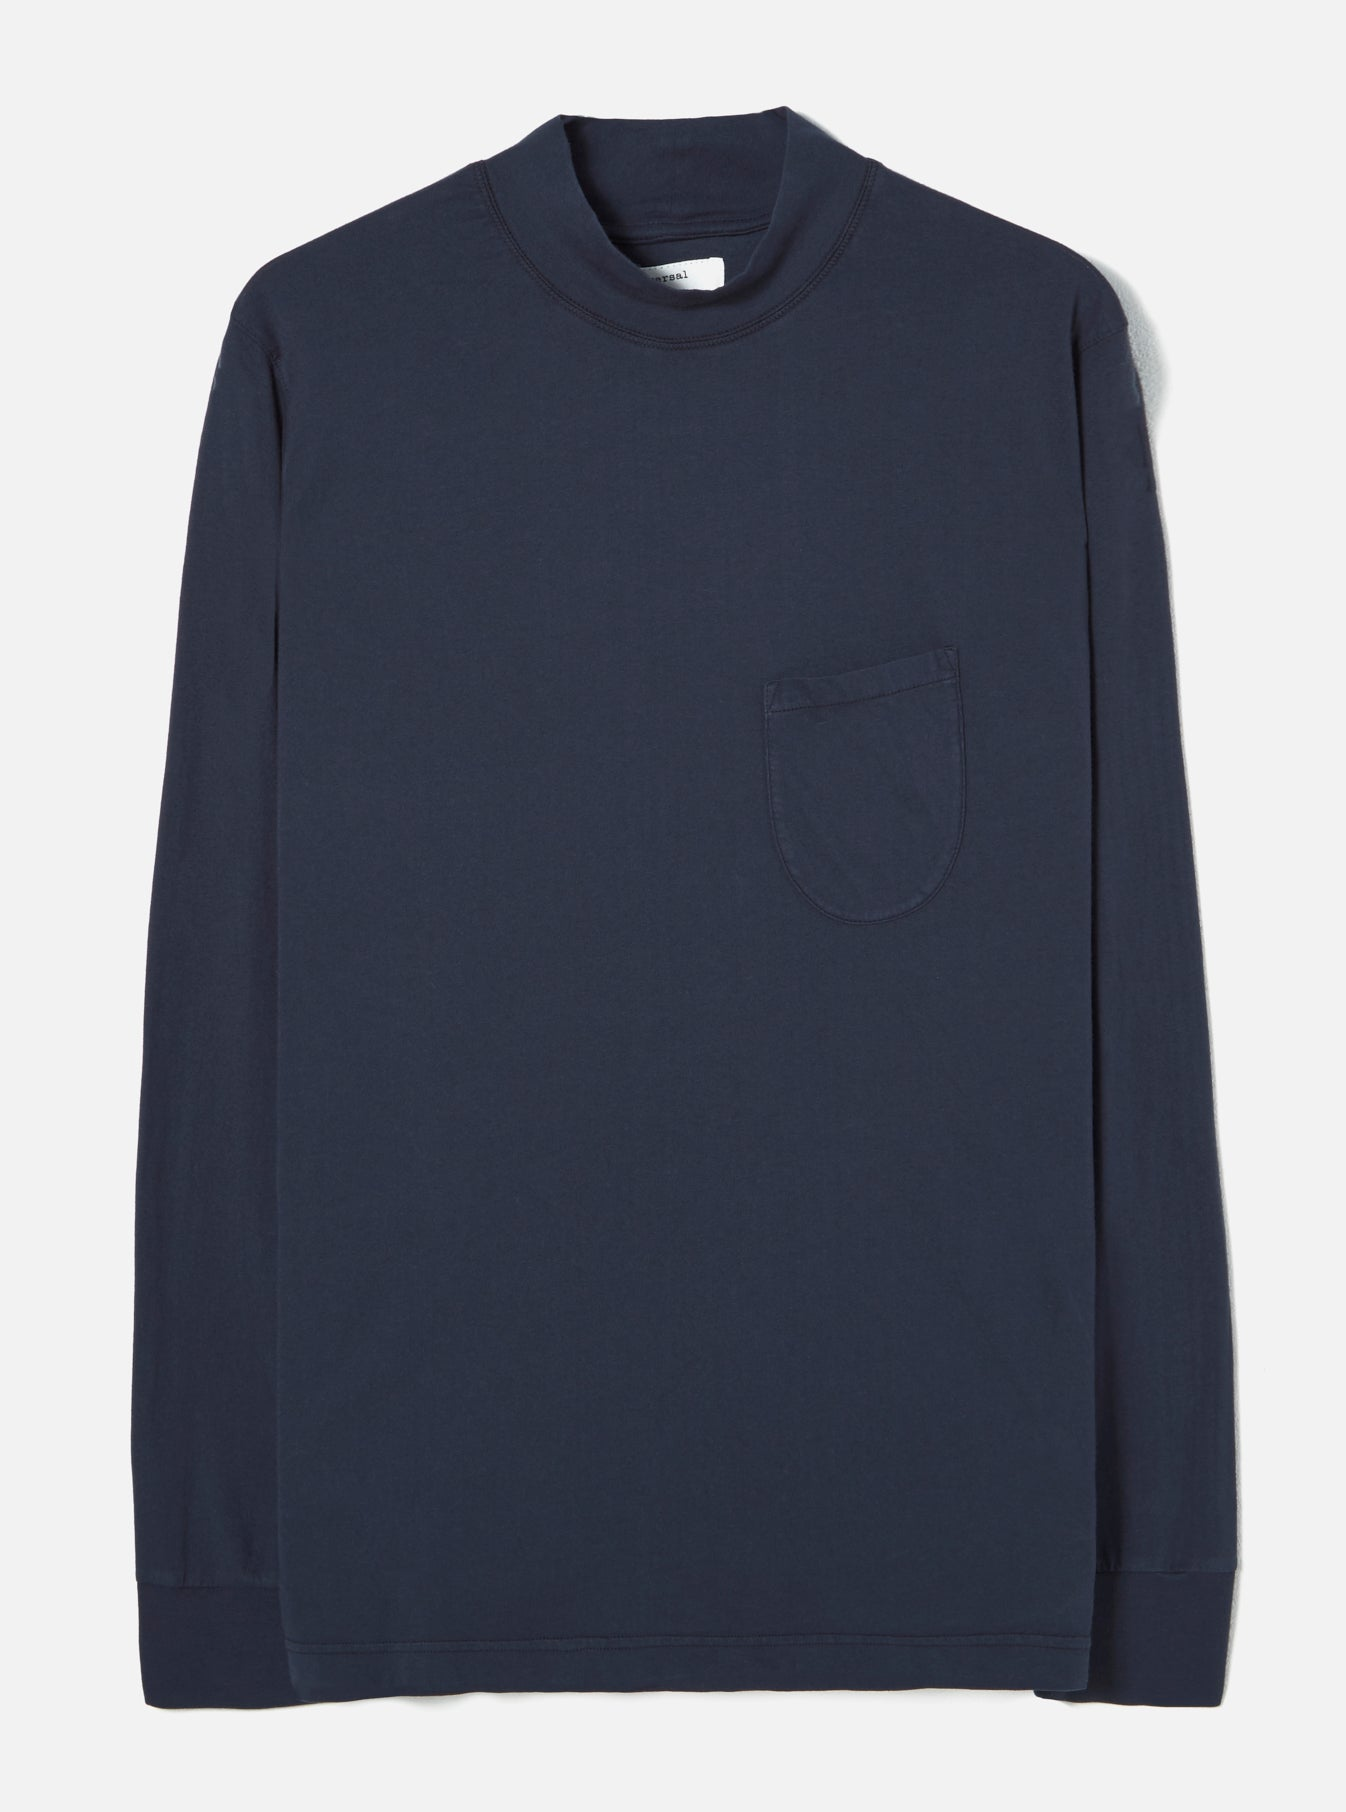 Universal Works Turtle Neck in Navy Single Jersey